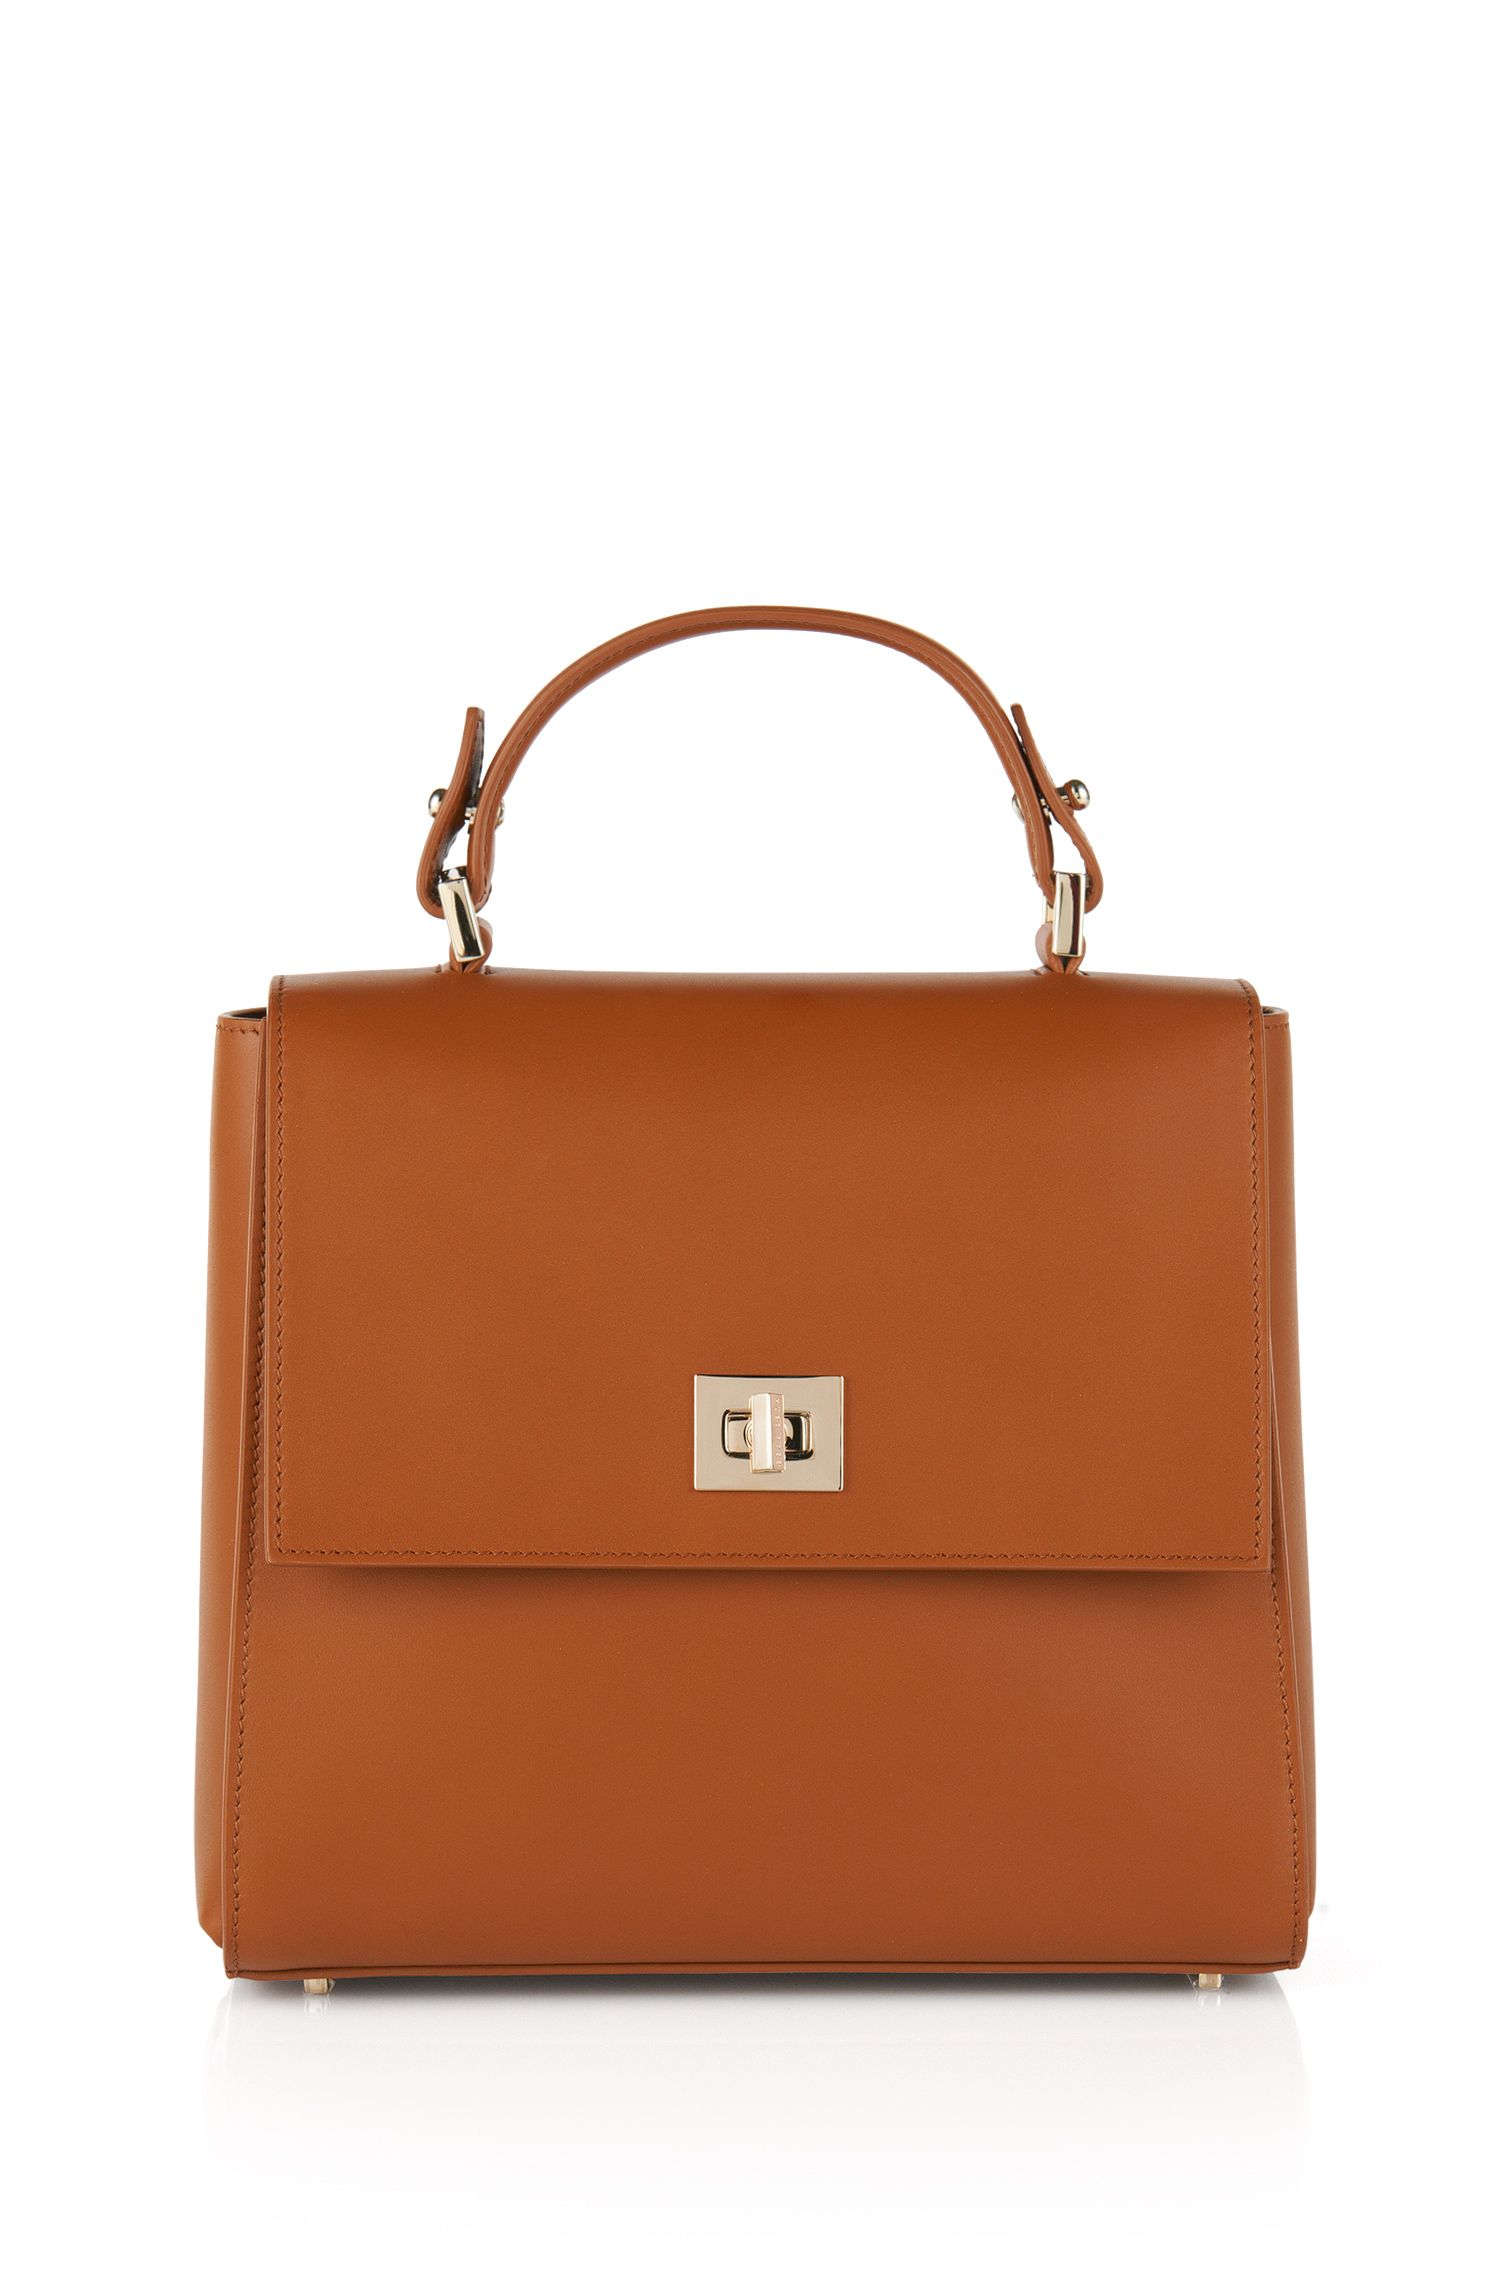 Piccola borsa BOSS Bespoke in pelle